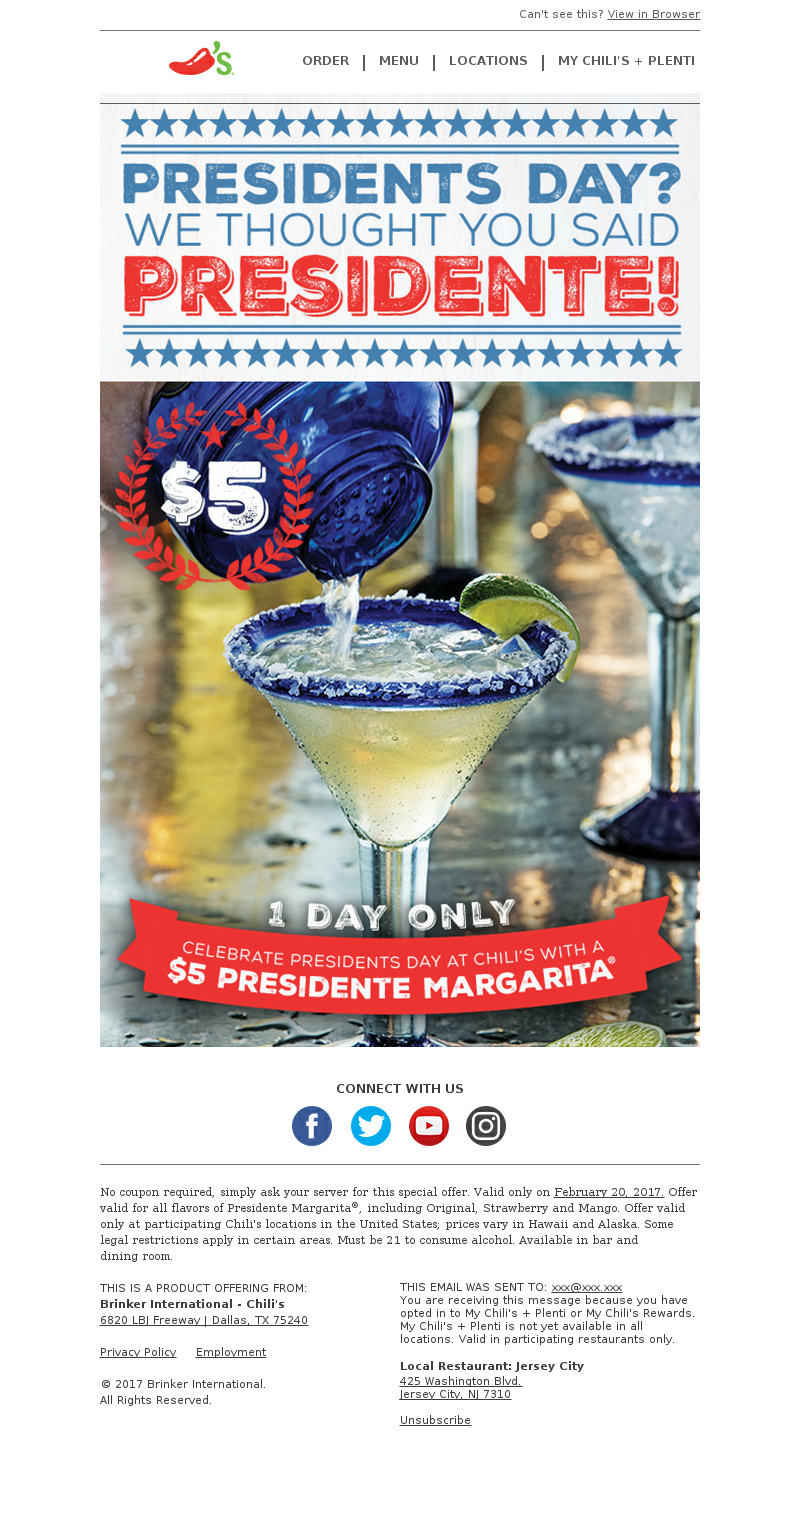 Chili's Grill & Bar - Head to Chili's for $5 🍹🍹 this Presidents Day!